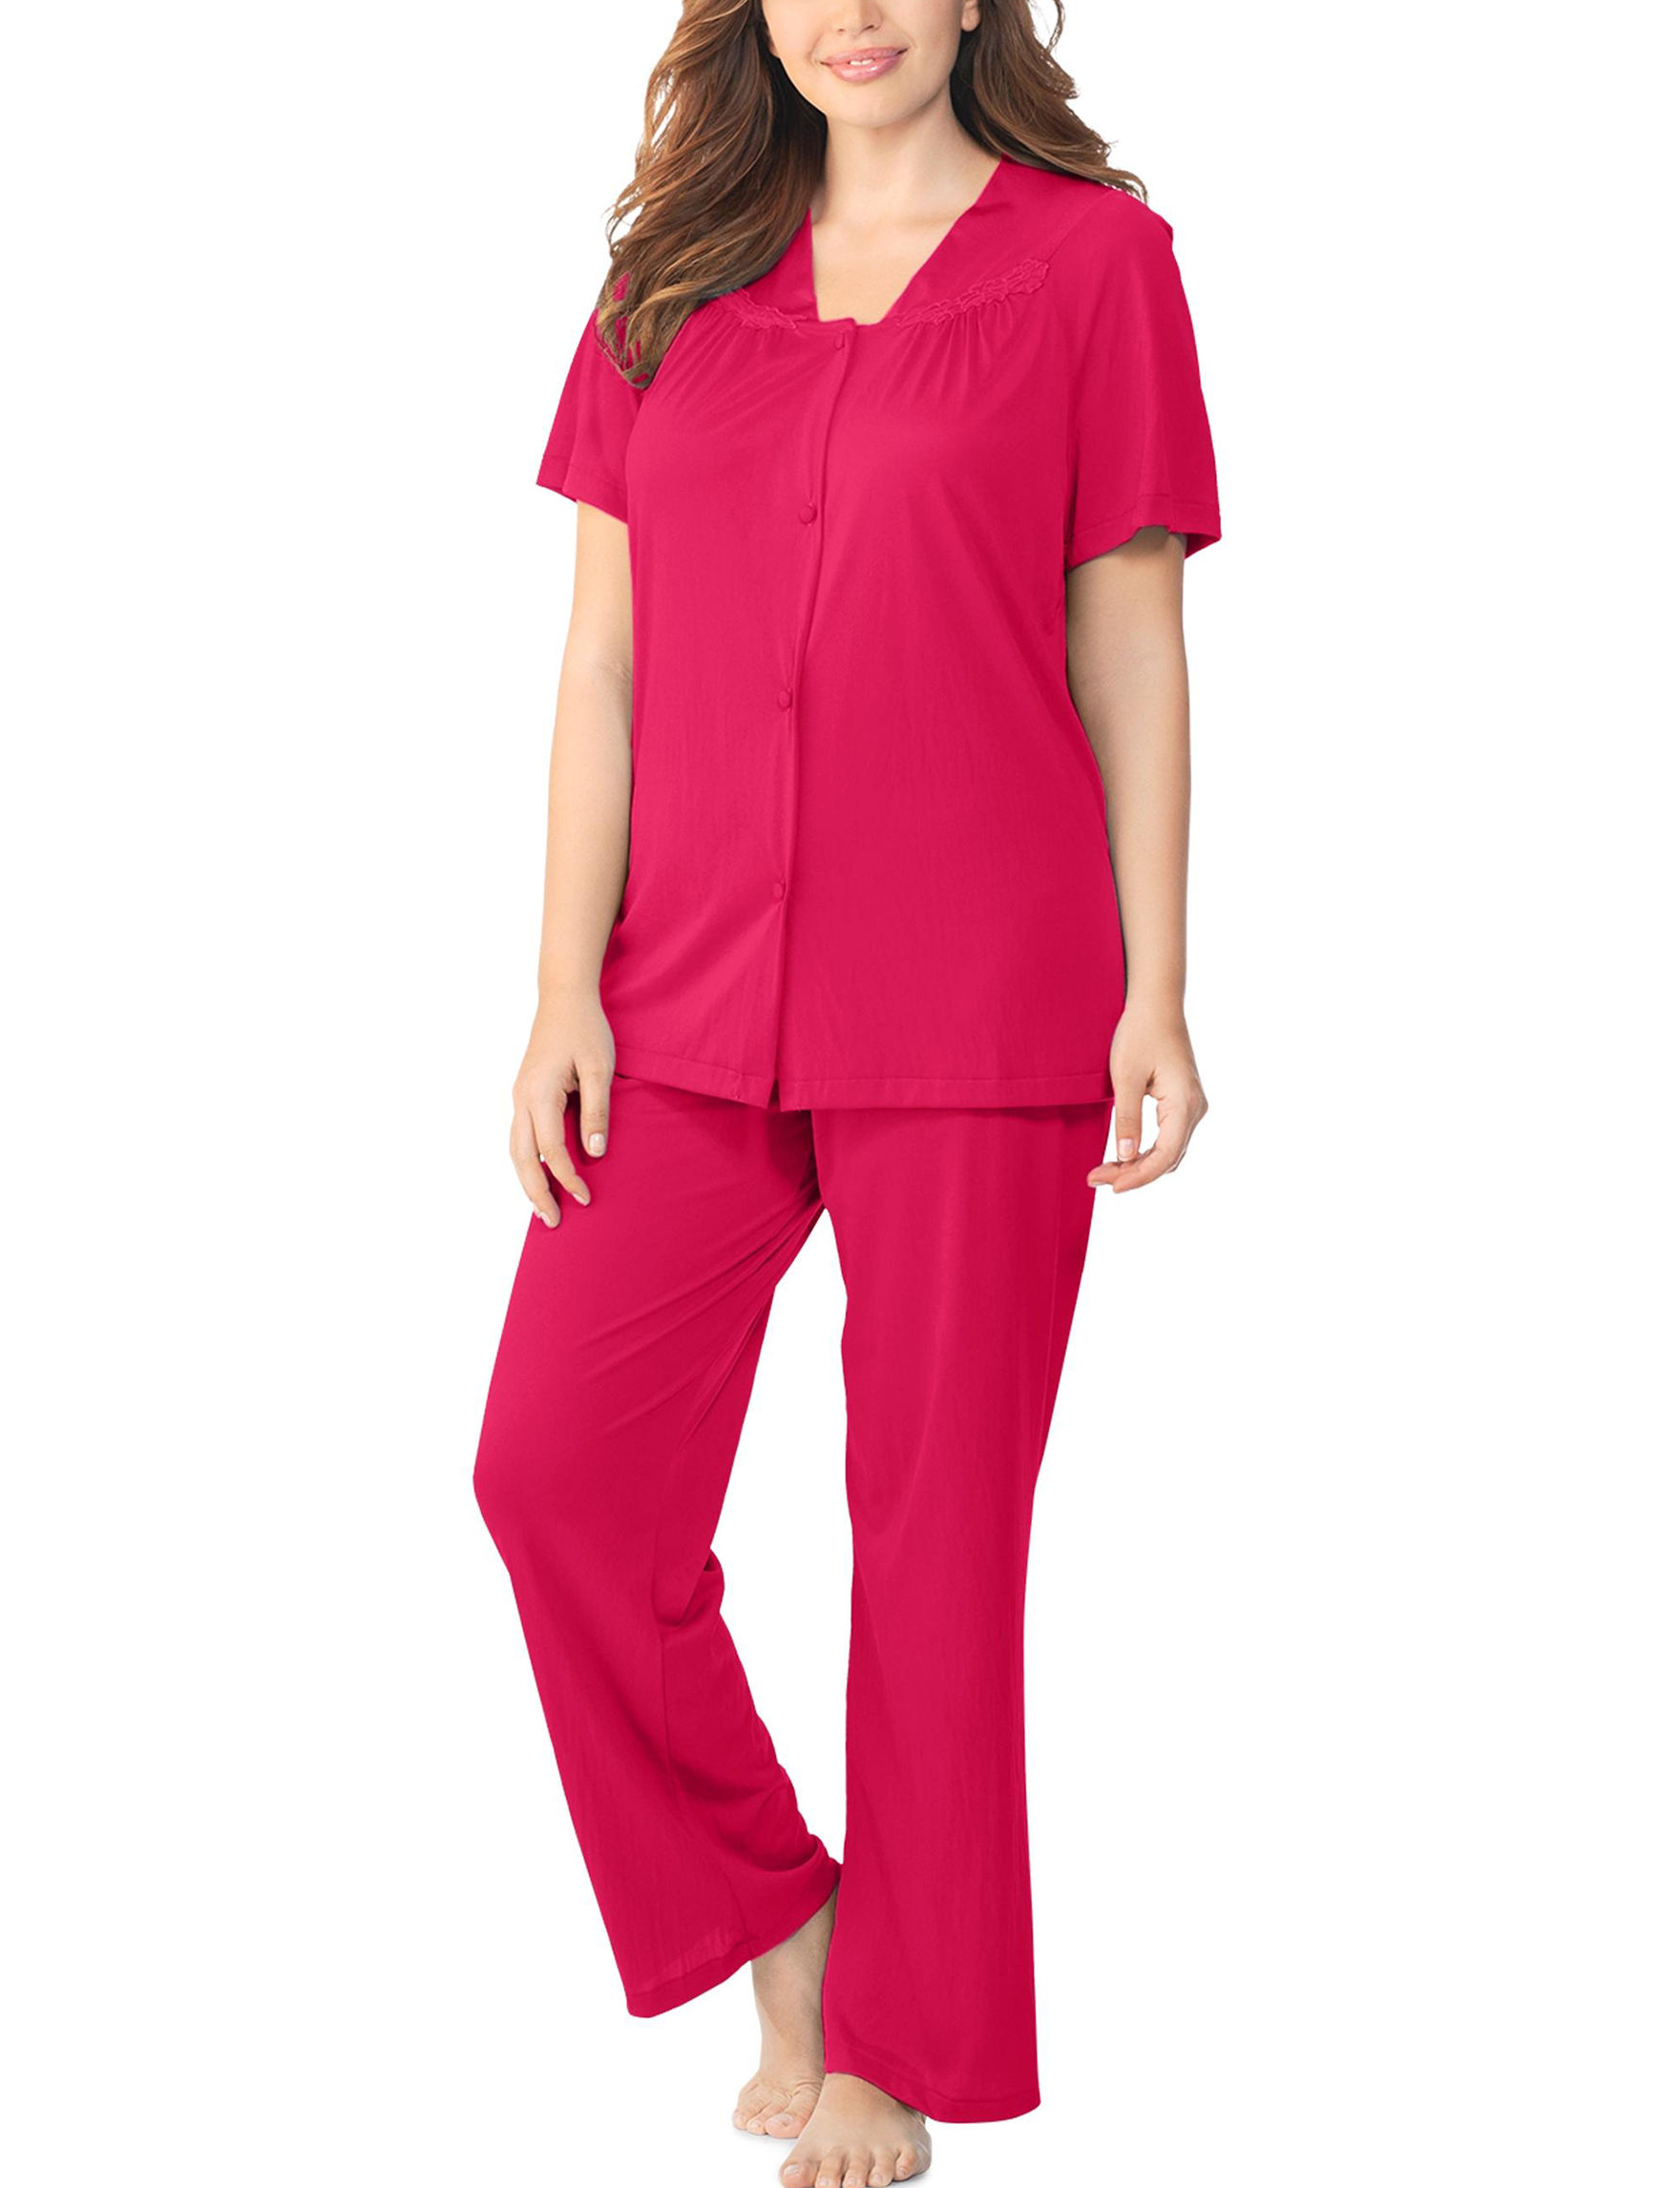 Vanity Fair Red Pajama Sets